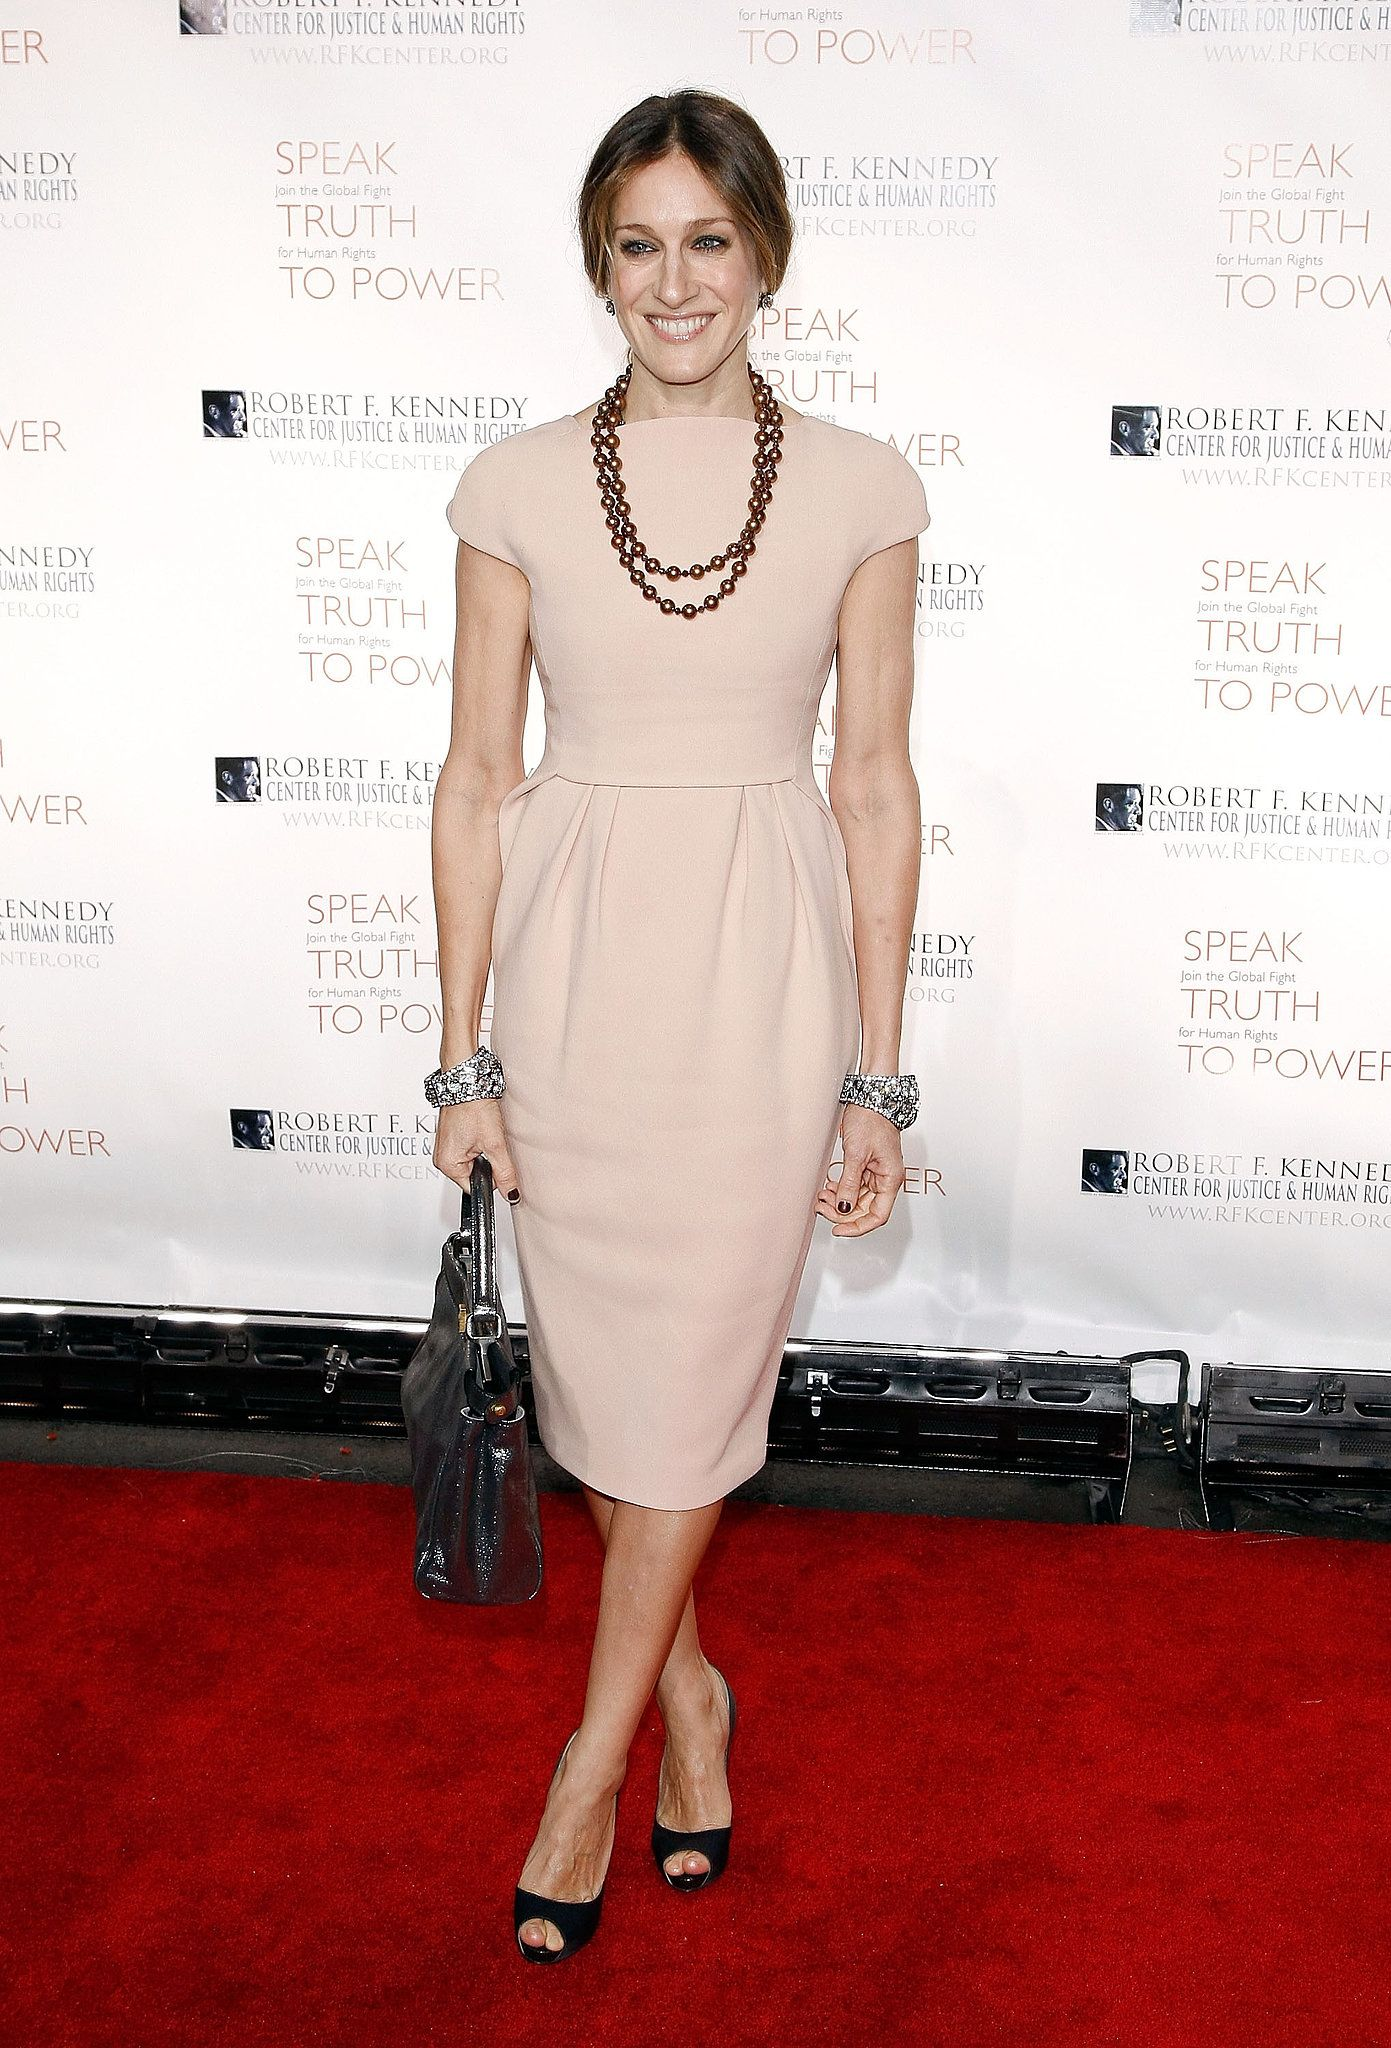 Sarah Jessica Parker Opted For A More Muted Palette Peach Red Carpet Ruler Will The Real Carrie Bradshaw Please Stand Up Popsugar Fashion Photo 40 Sarah Jessica Parker